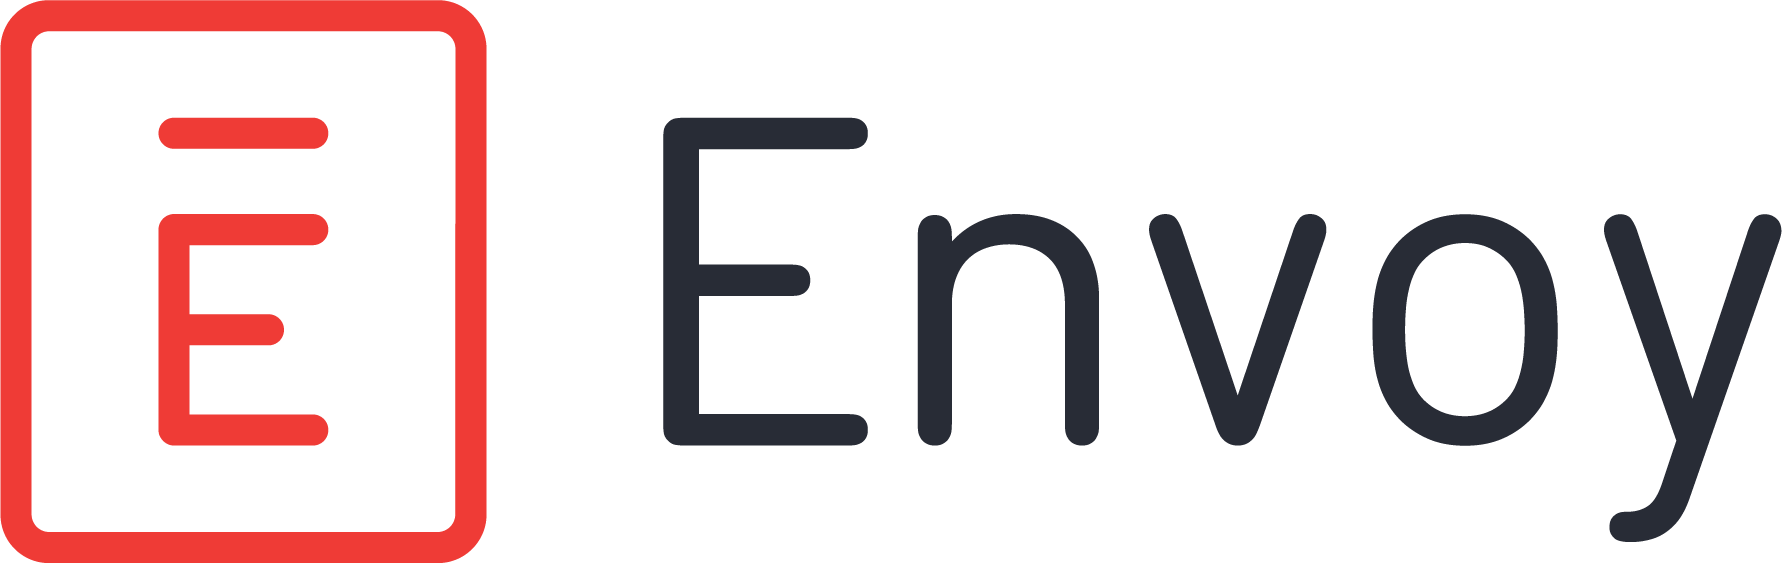 Envoy logo Widerfunnel case study